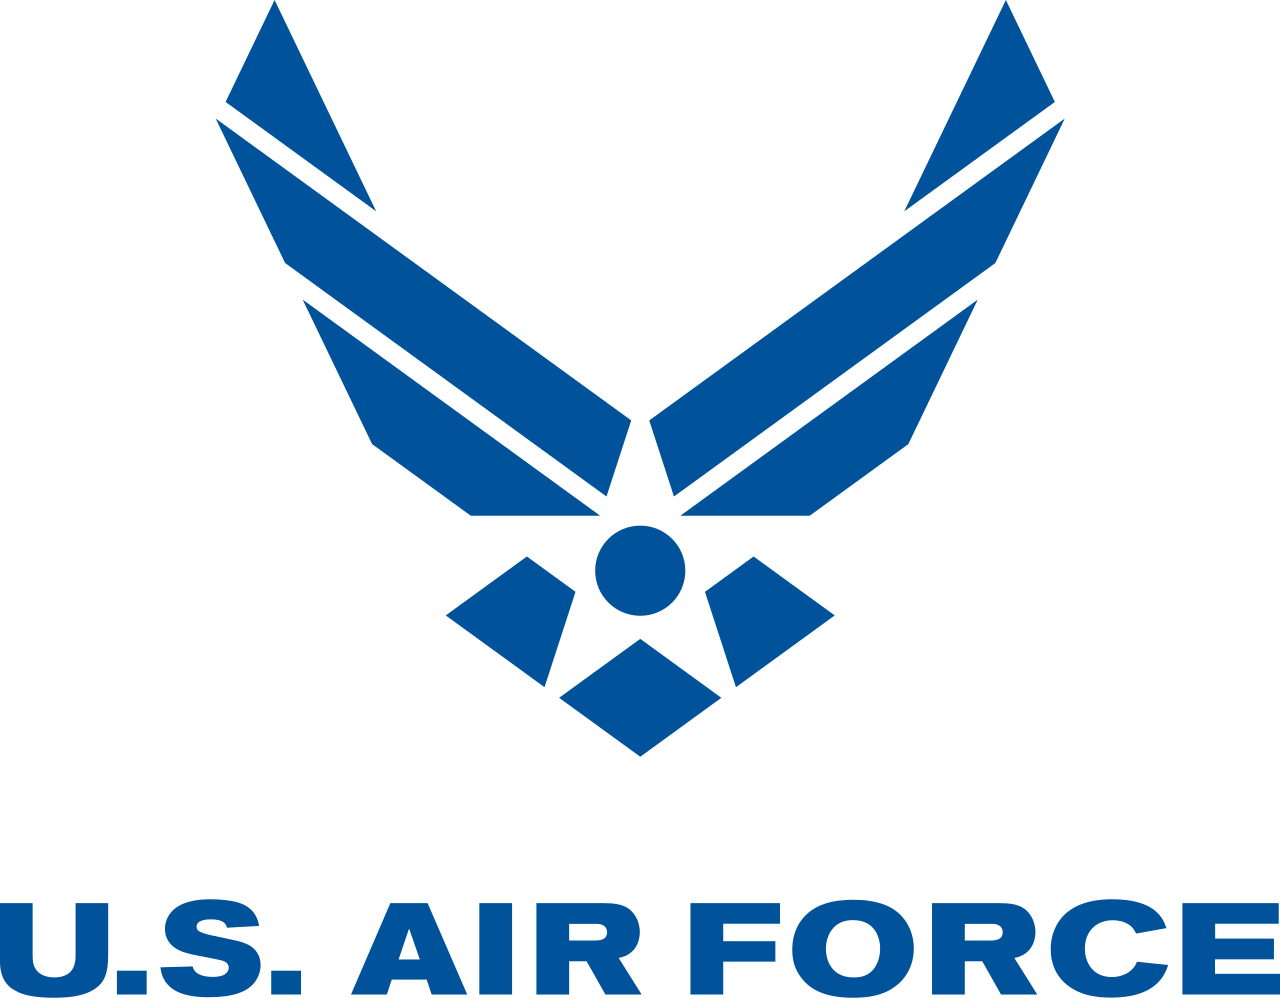 United States Air Force - Armed force